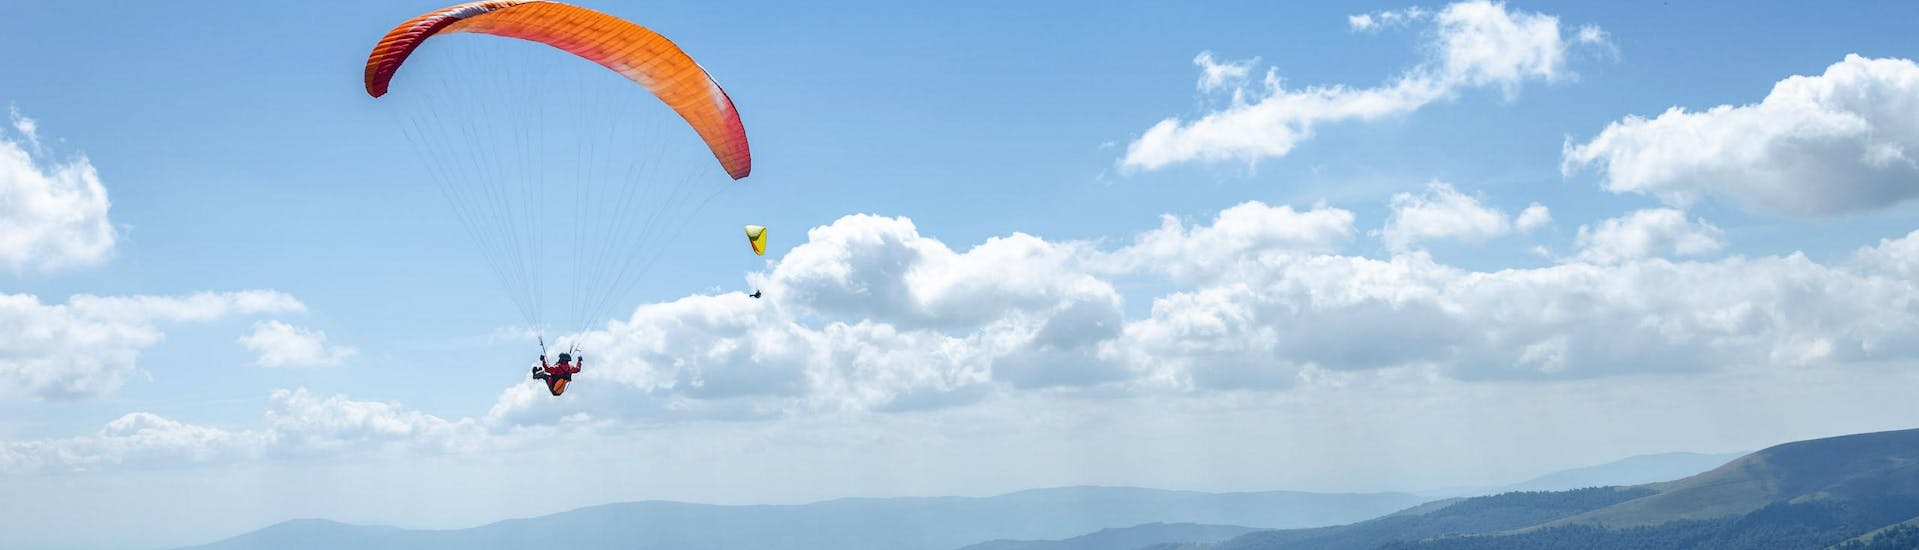 Tandem Paragliding Couple's Flight over Chiemsee or Kössen